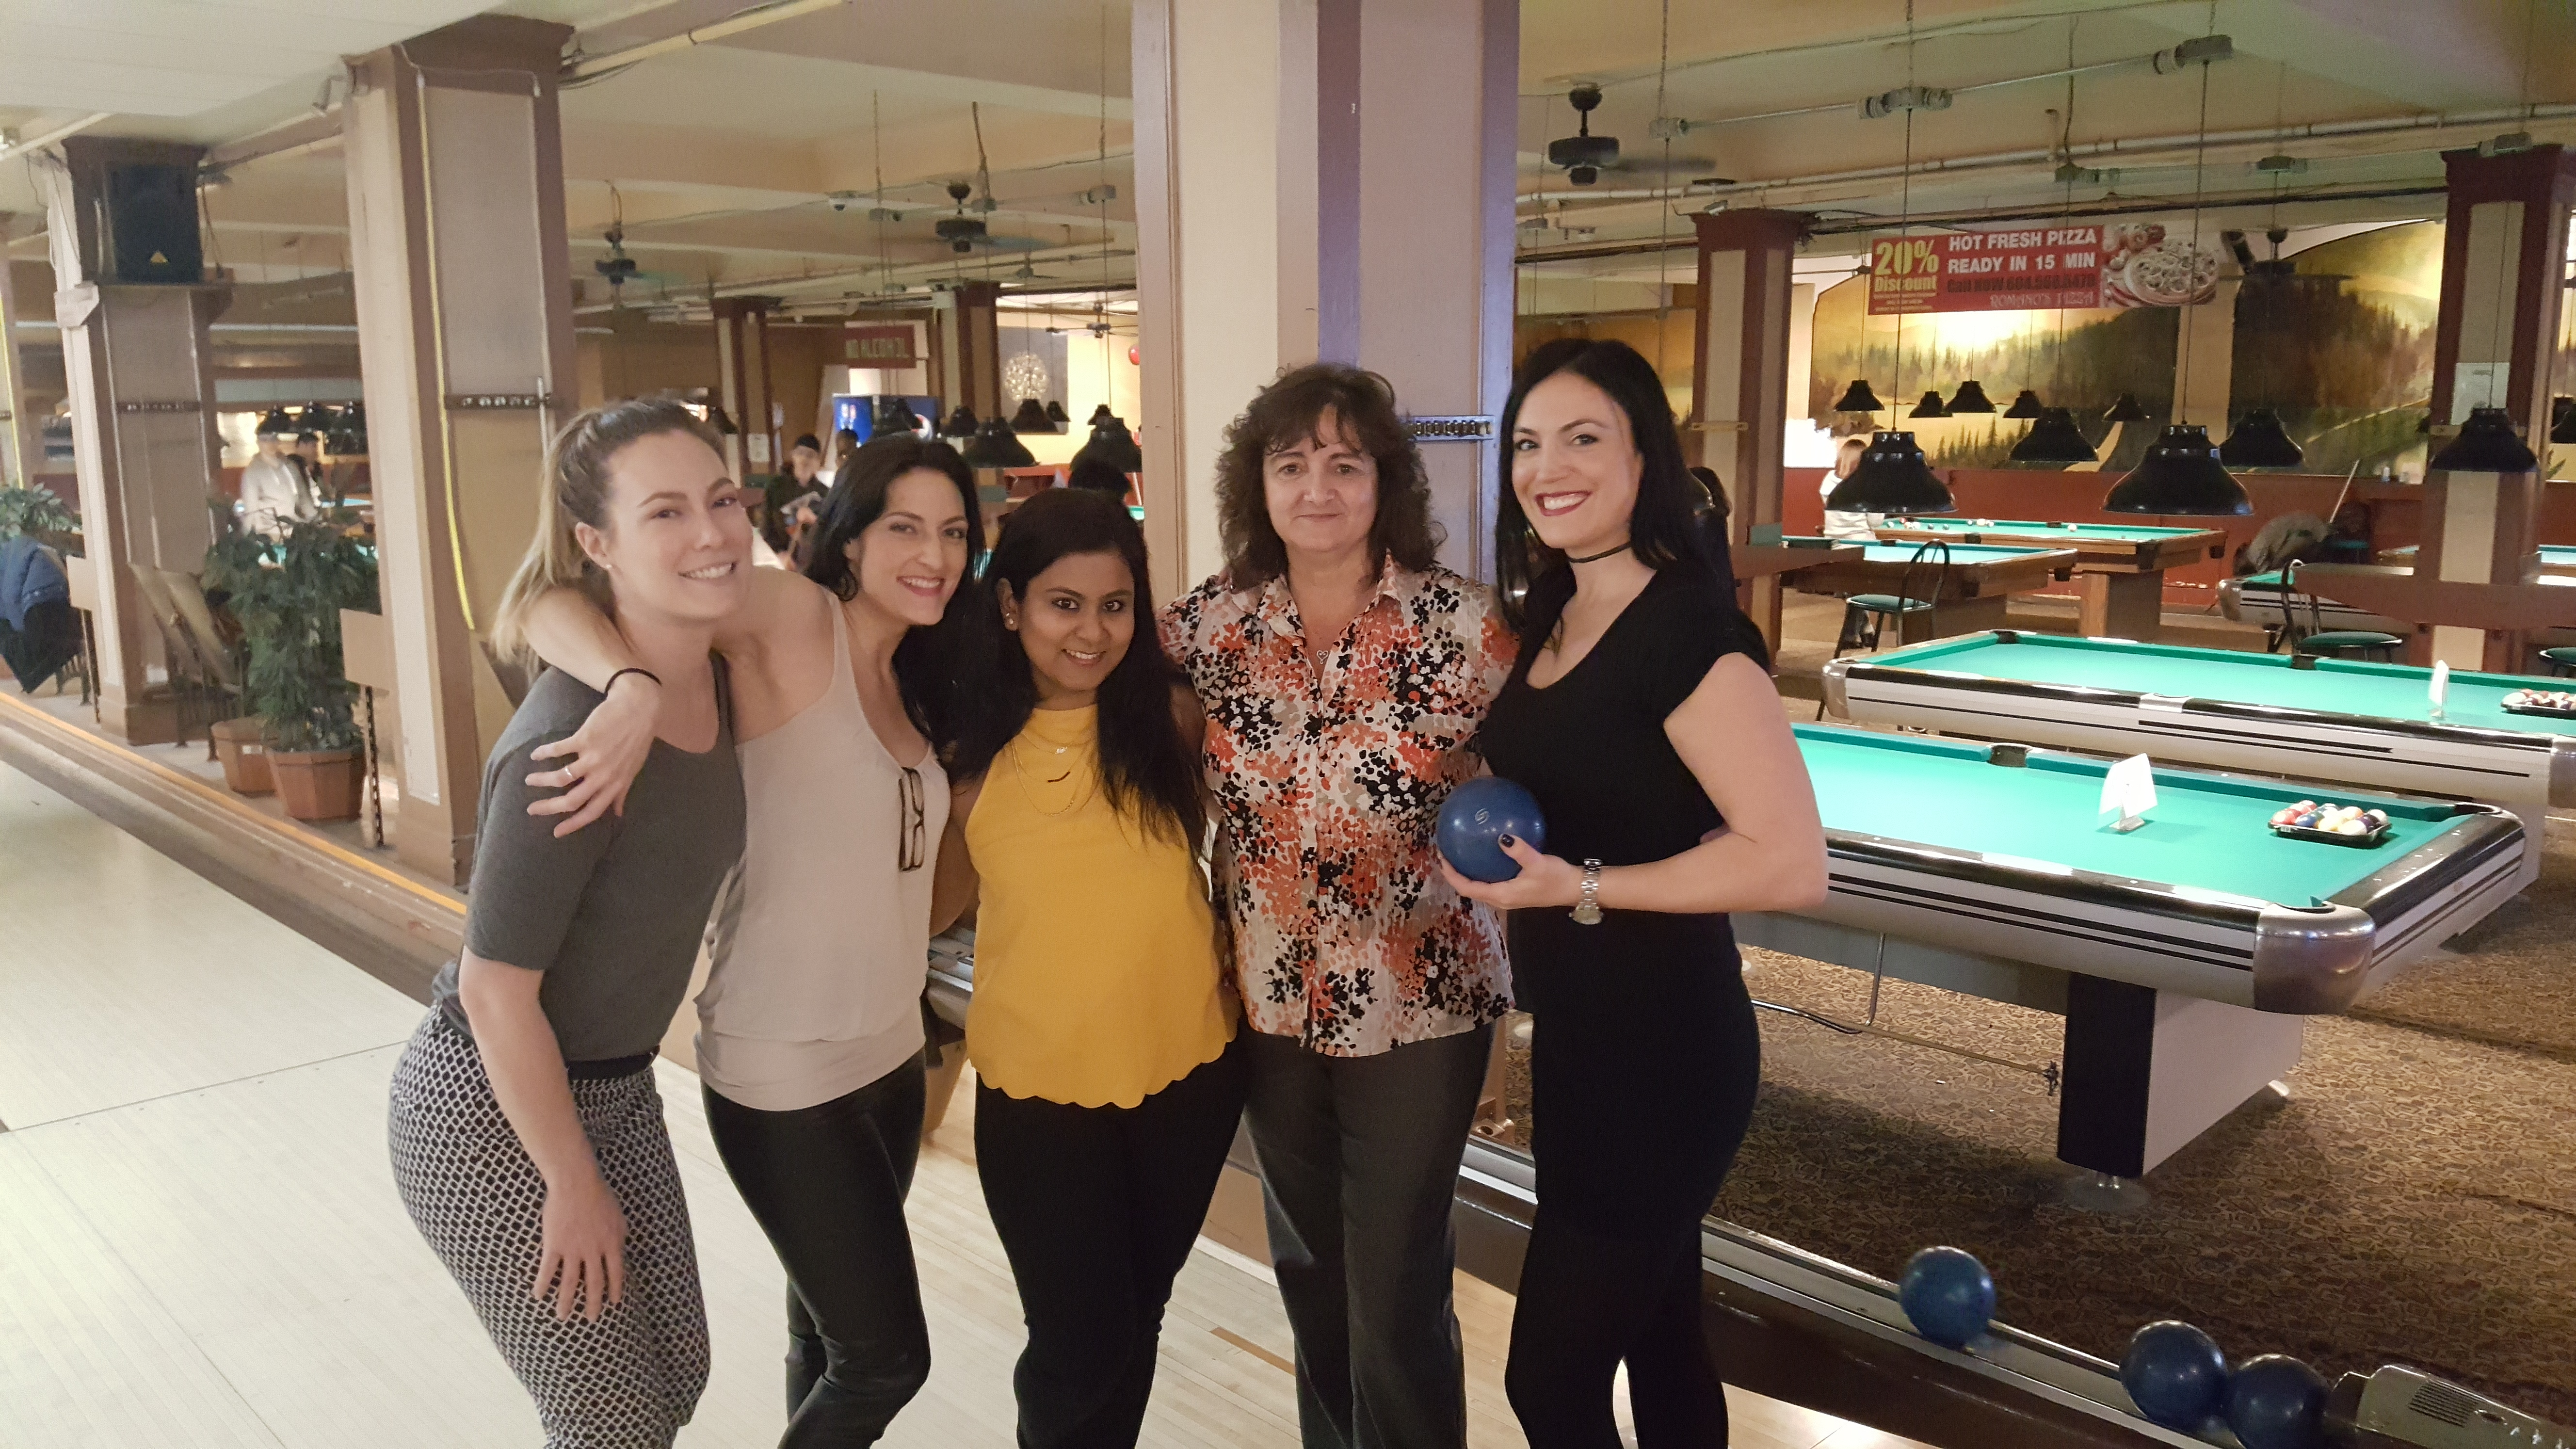 20170217 1801172 - Impact night out: pizza, bowling and beer!